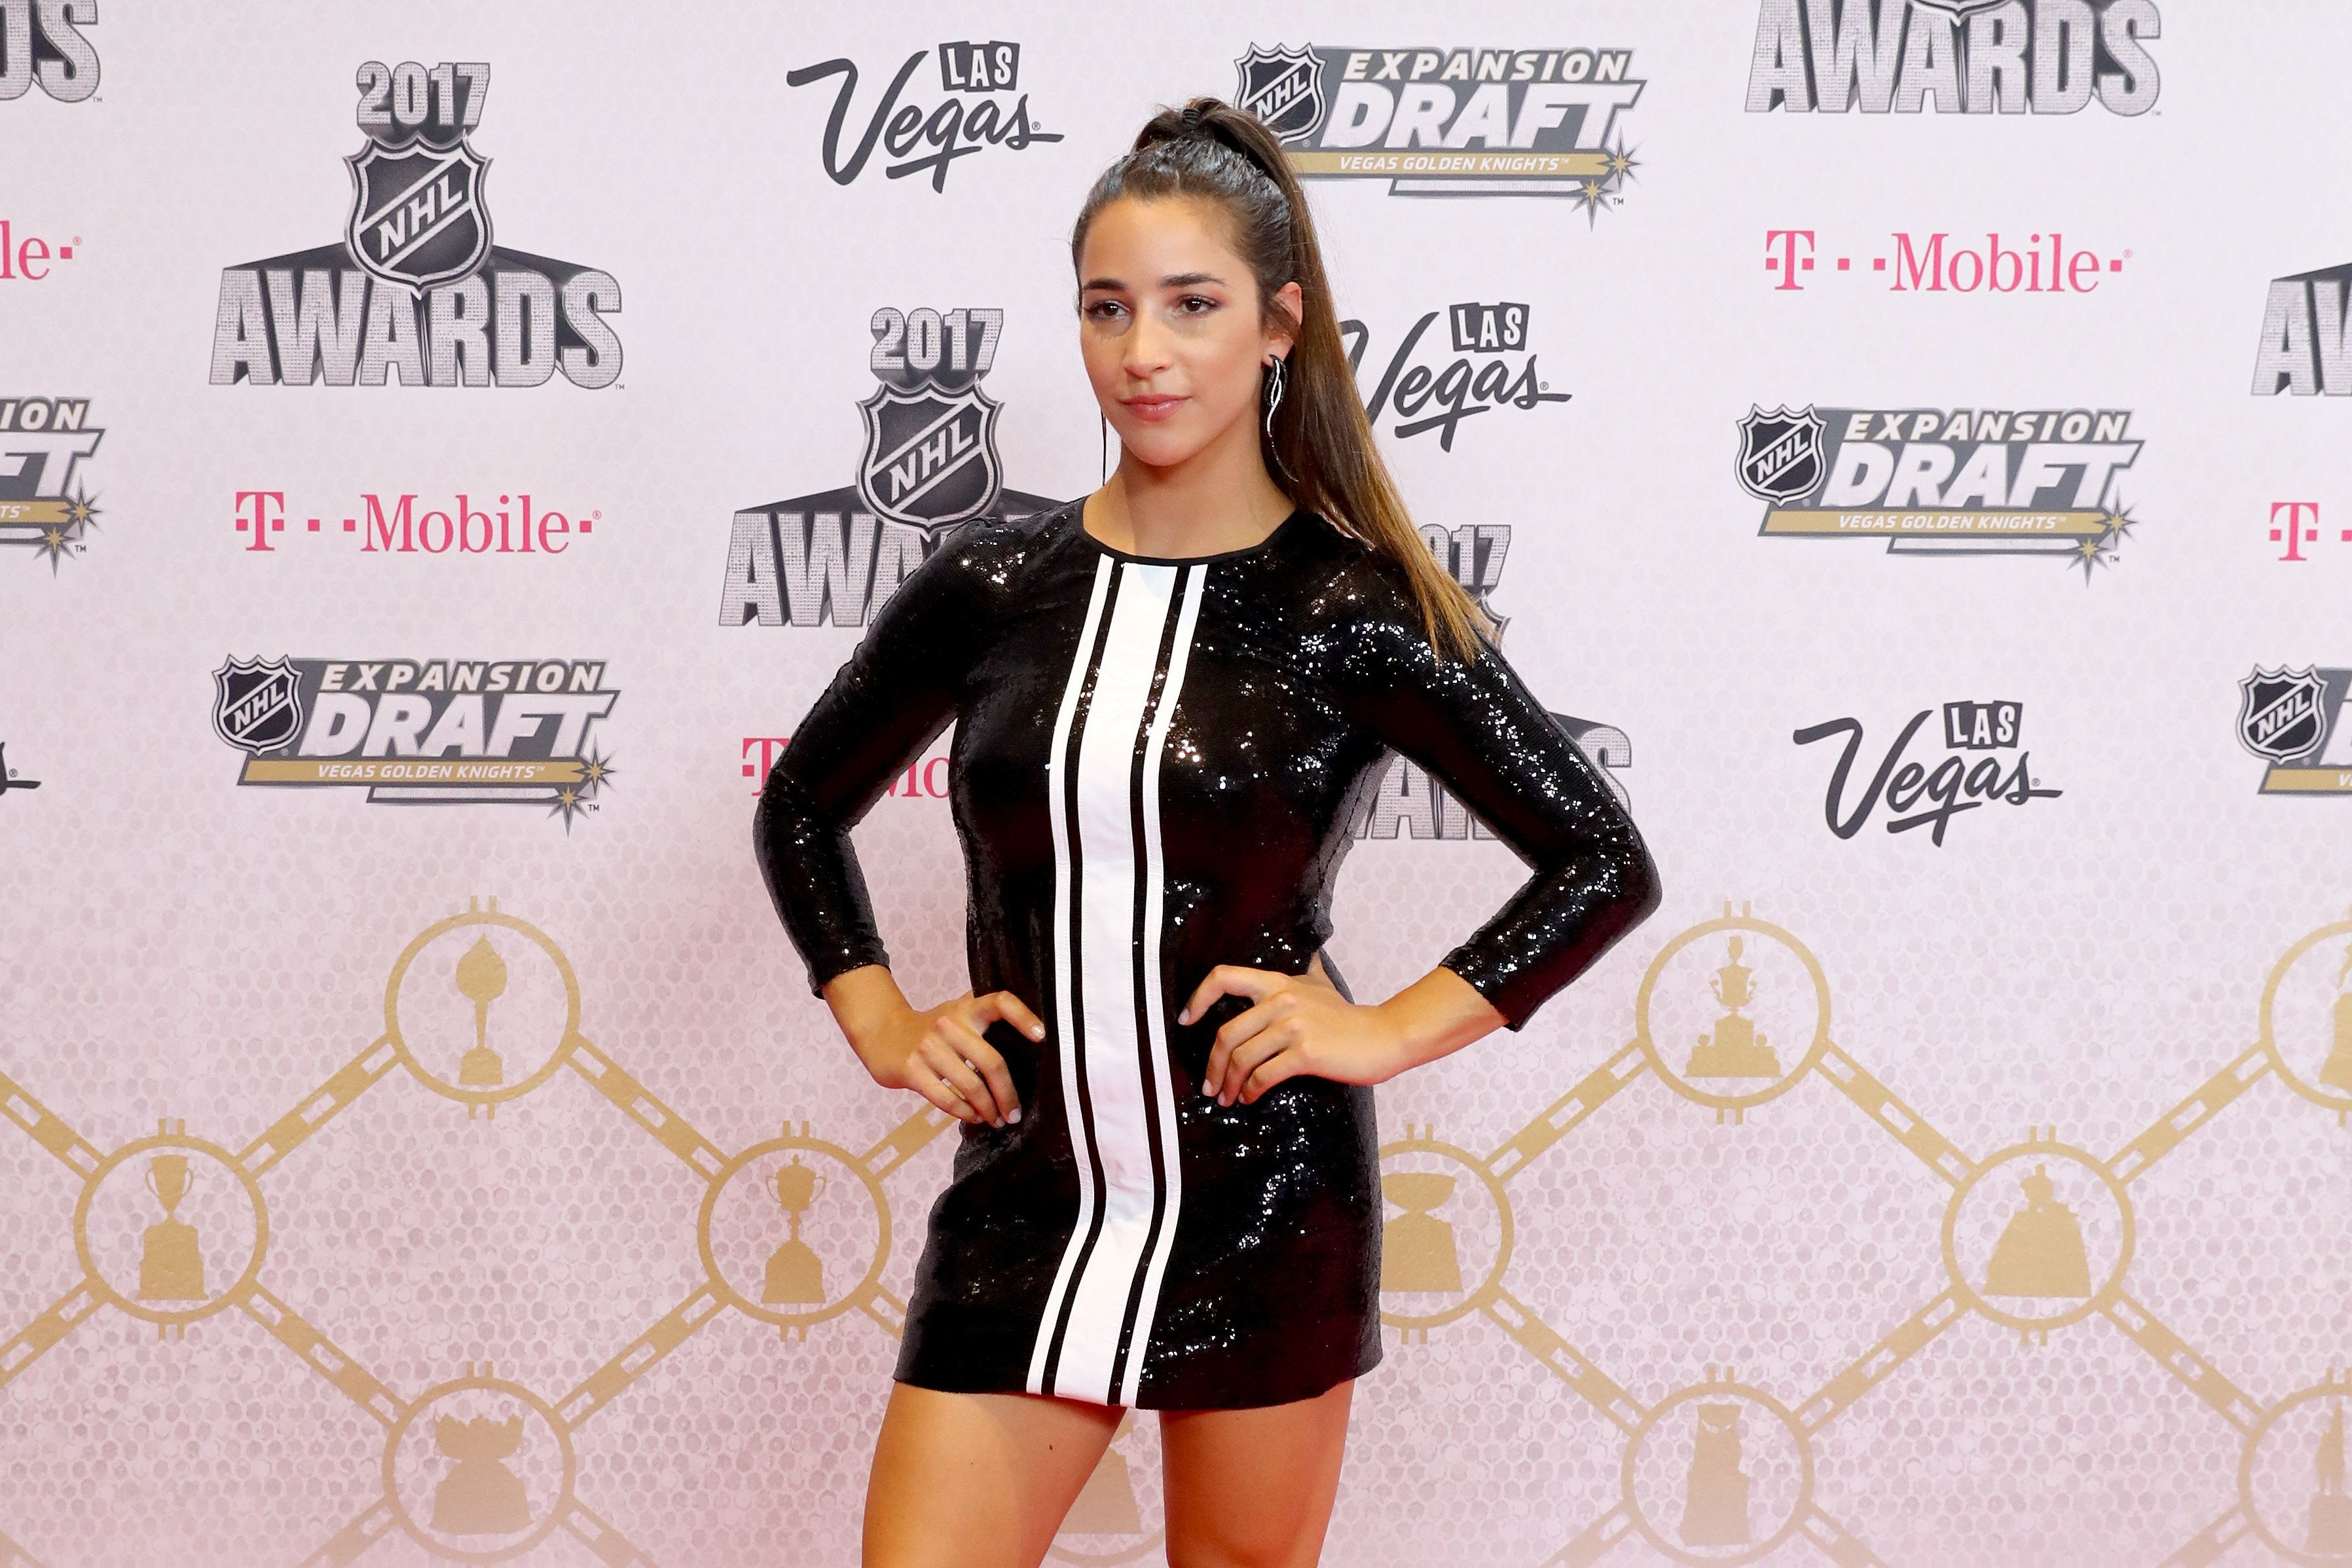 LAS VEGAS, NV - JUNE 21:  Gymnast Aly Raisman attends the 2017 NHL Awards at T-Mobile Arena on June 21, 2017 in Las Vegas, Nevada.  (Photo by Bruce Bennett/Getty Images)